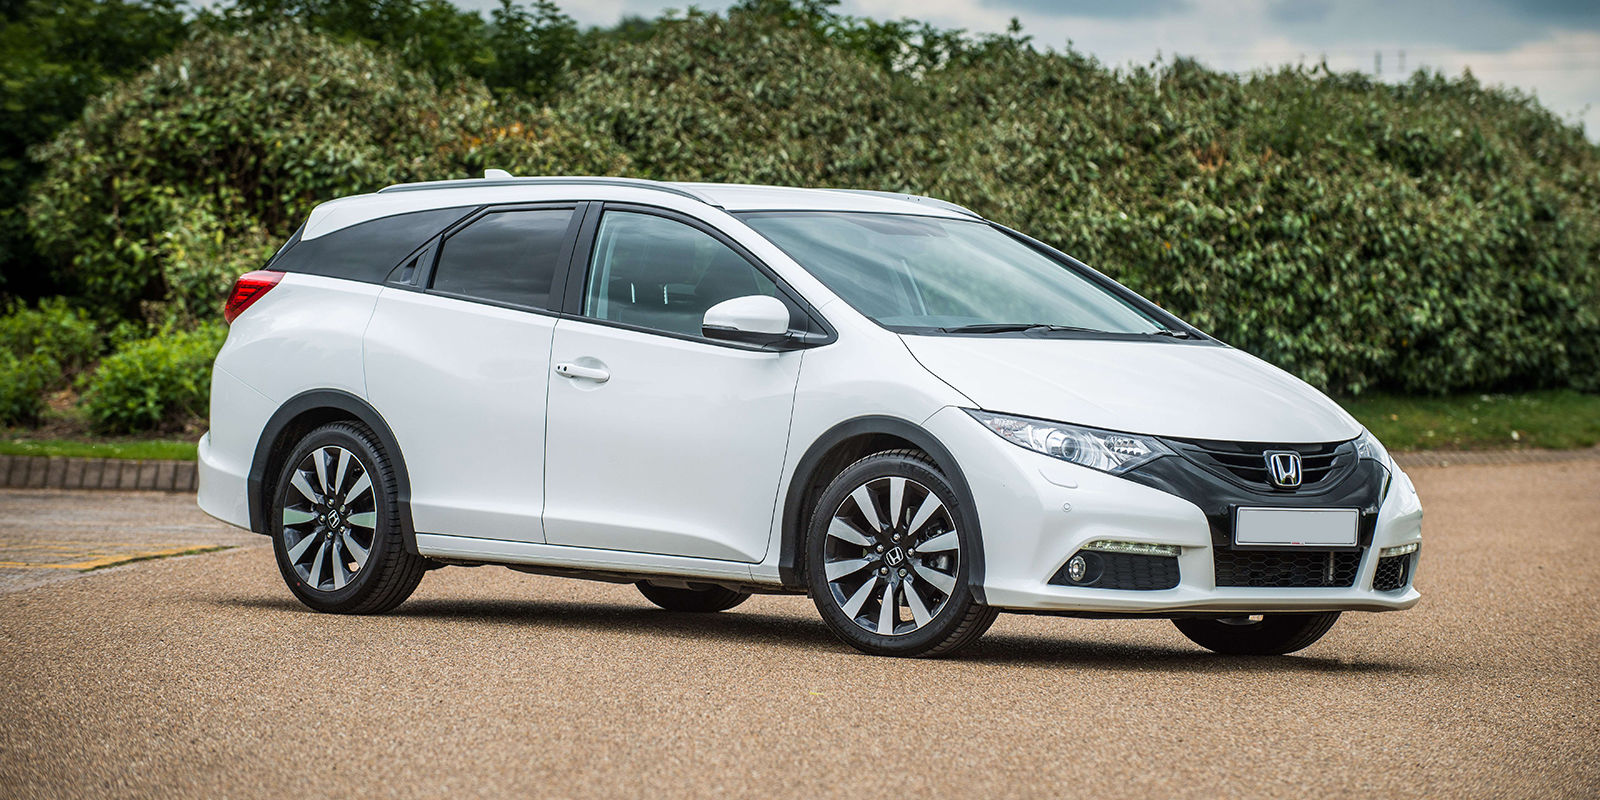 Honda Civic Tourer - 5 Seats - 42 -74MPG